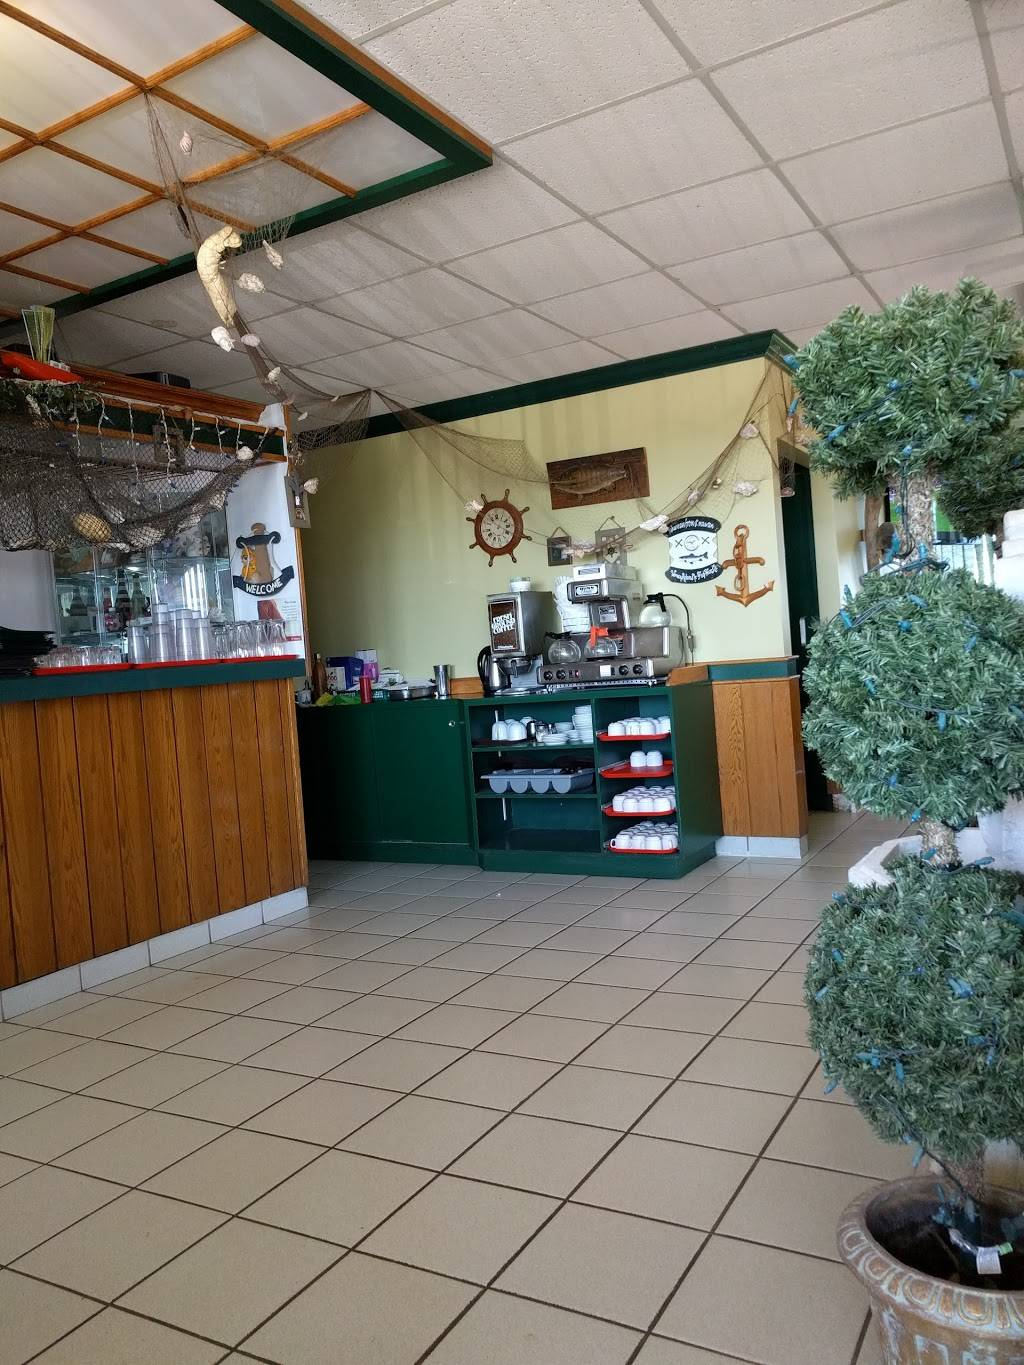 Fishermans | restaurant | 3341 ON-35, Newcastle, ON L1B 1L9, Canada | 9059872020 OR +1 905-987-2020